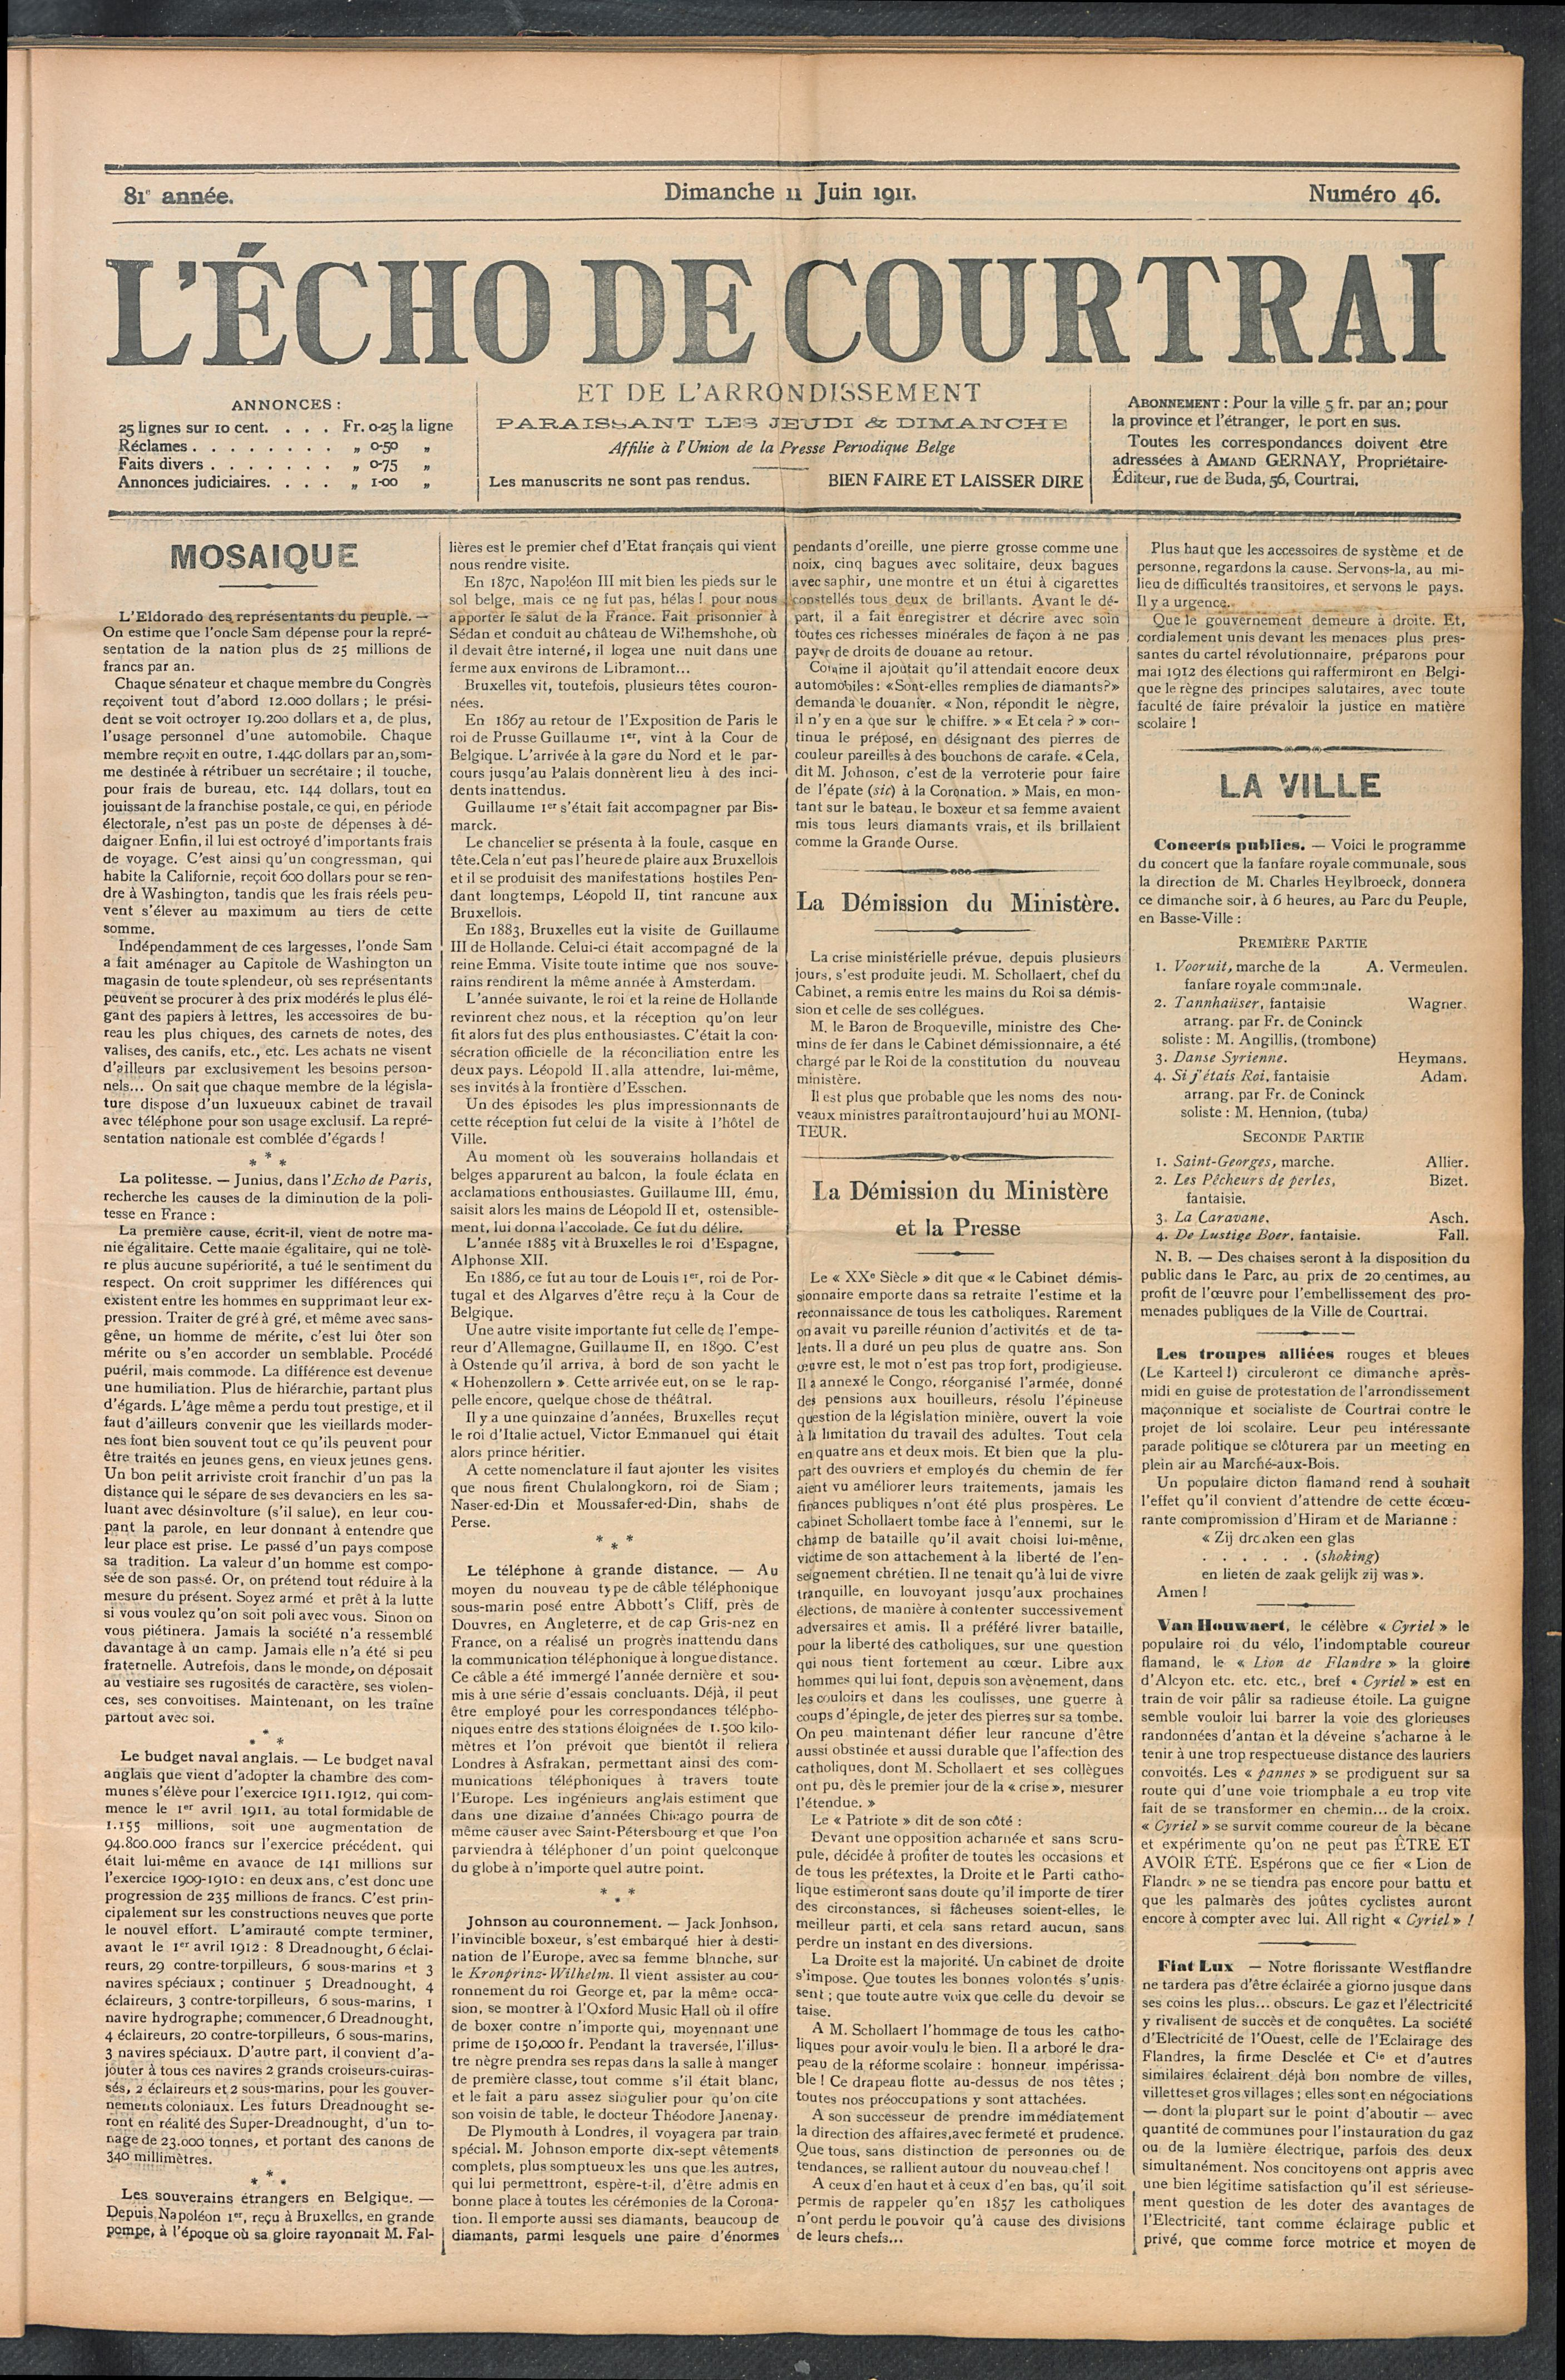 L'echo De Courtrai 1911-06-11 p1